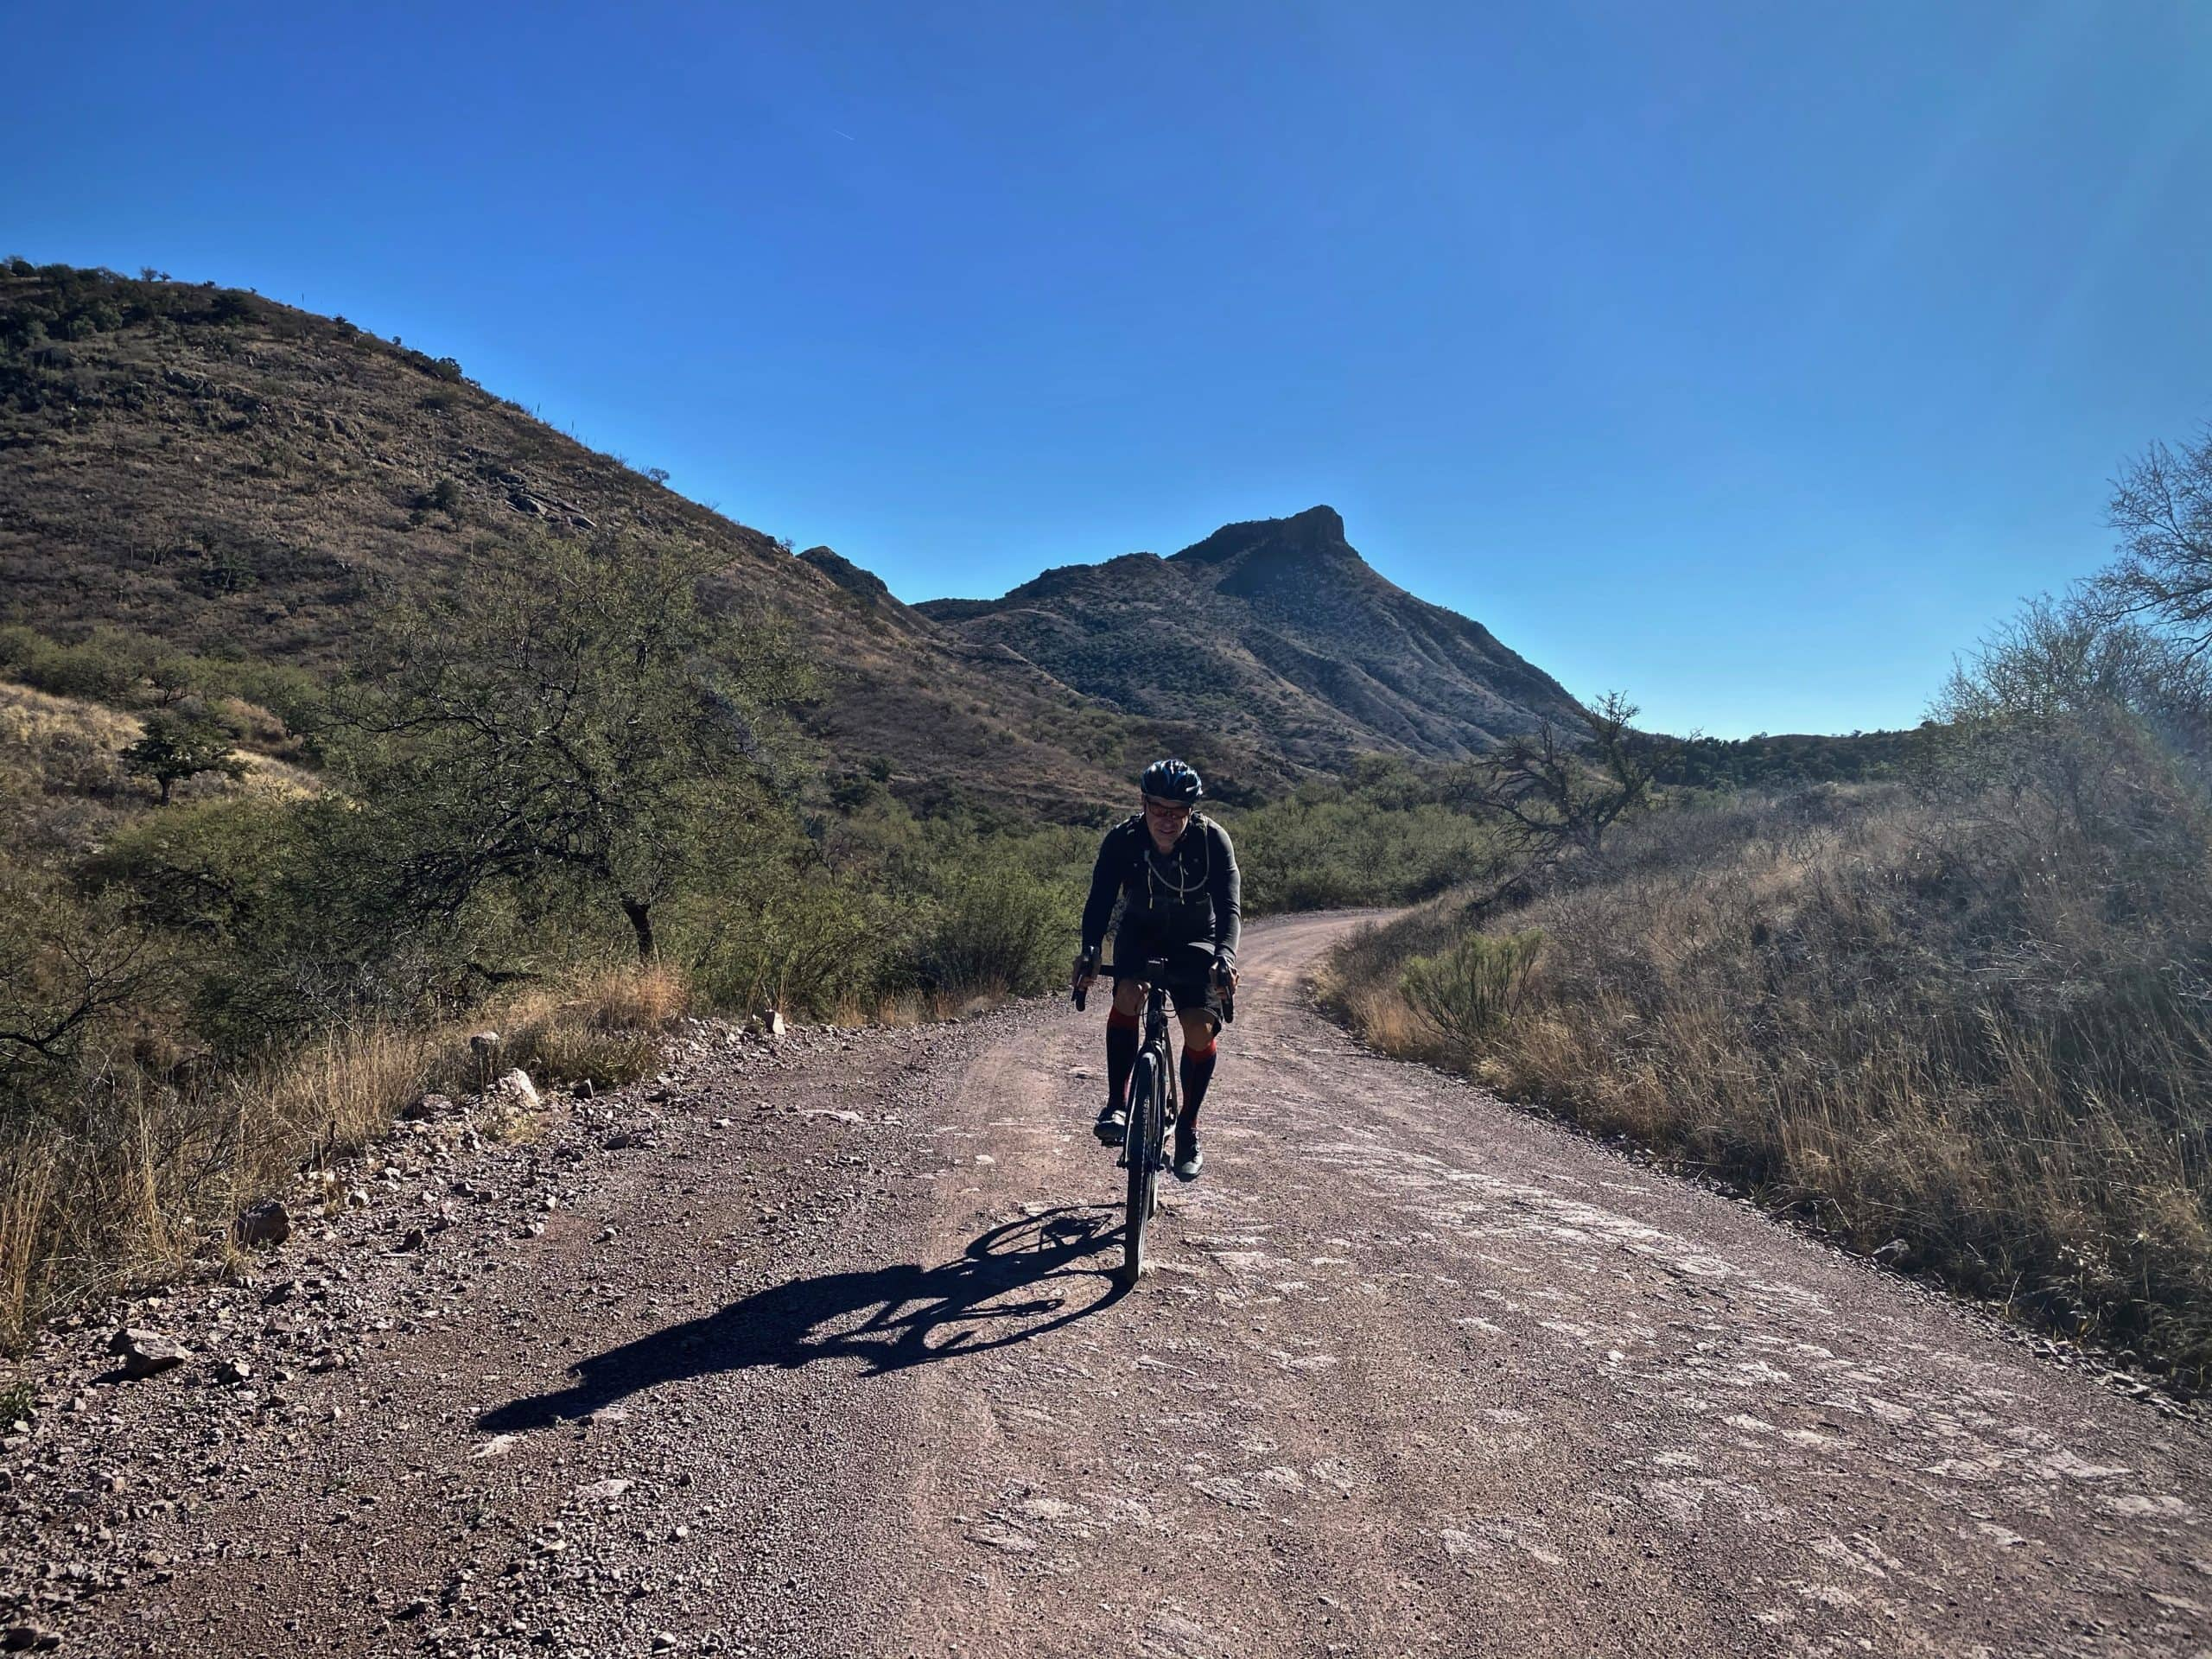 Gravel cyclist on Ruby road with Montana Peak in the background, south of Tucson, Arizona.